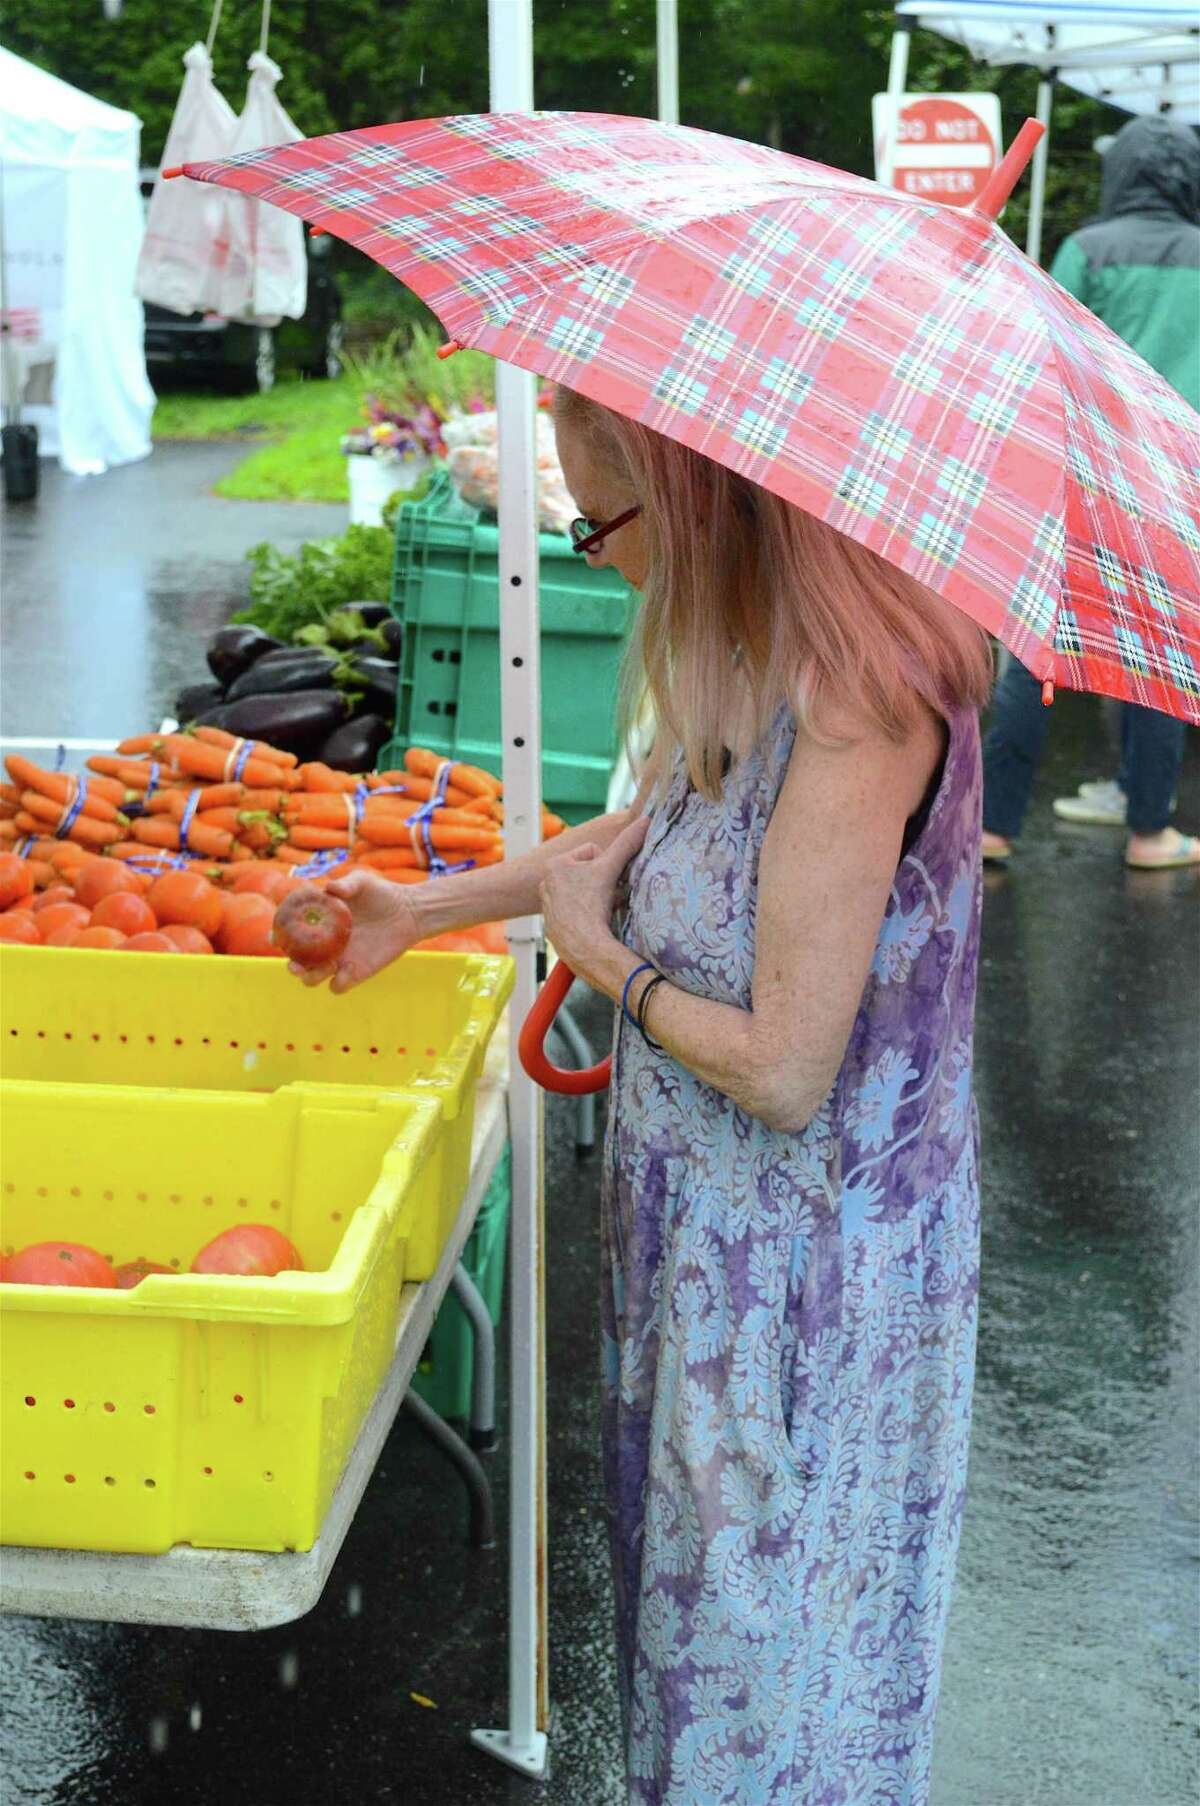 Eve Martin of Darien checks out some tomatoes at the weekly New Canaan Farmers' Market, Saturday, Aug. 11, 2018, in New Canaan, Conn.